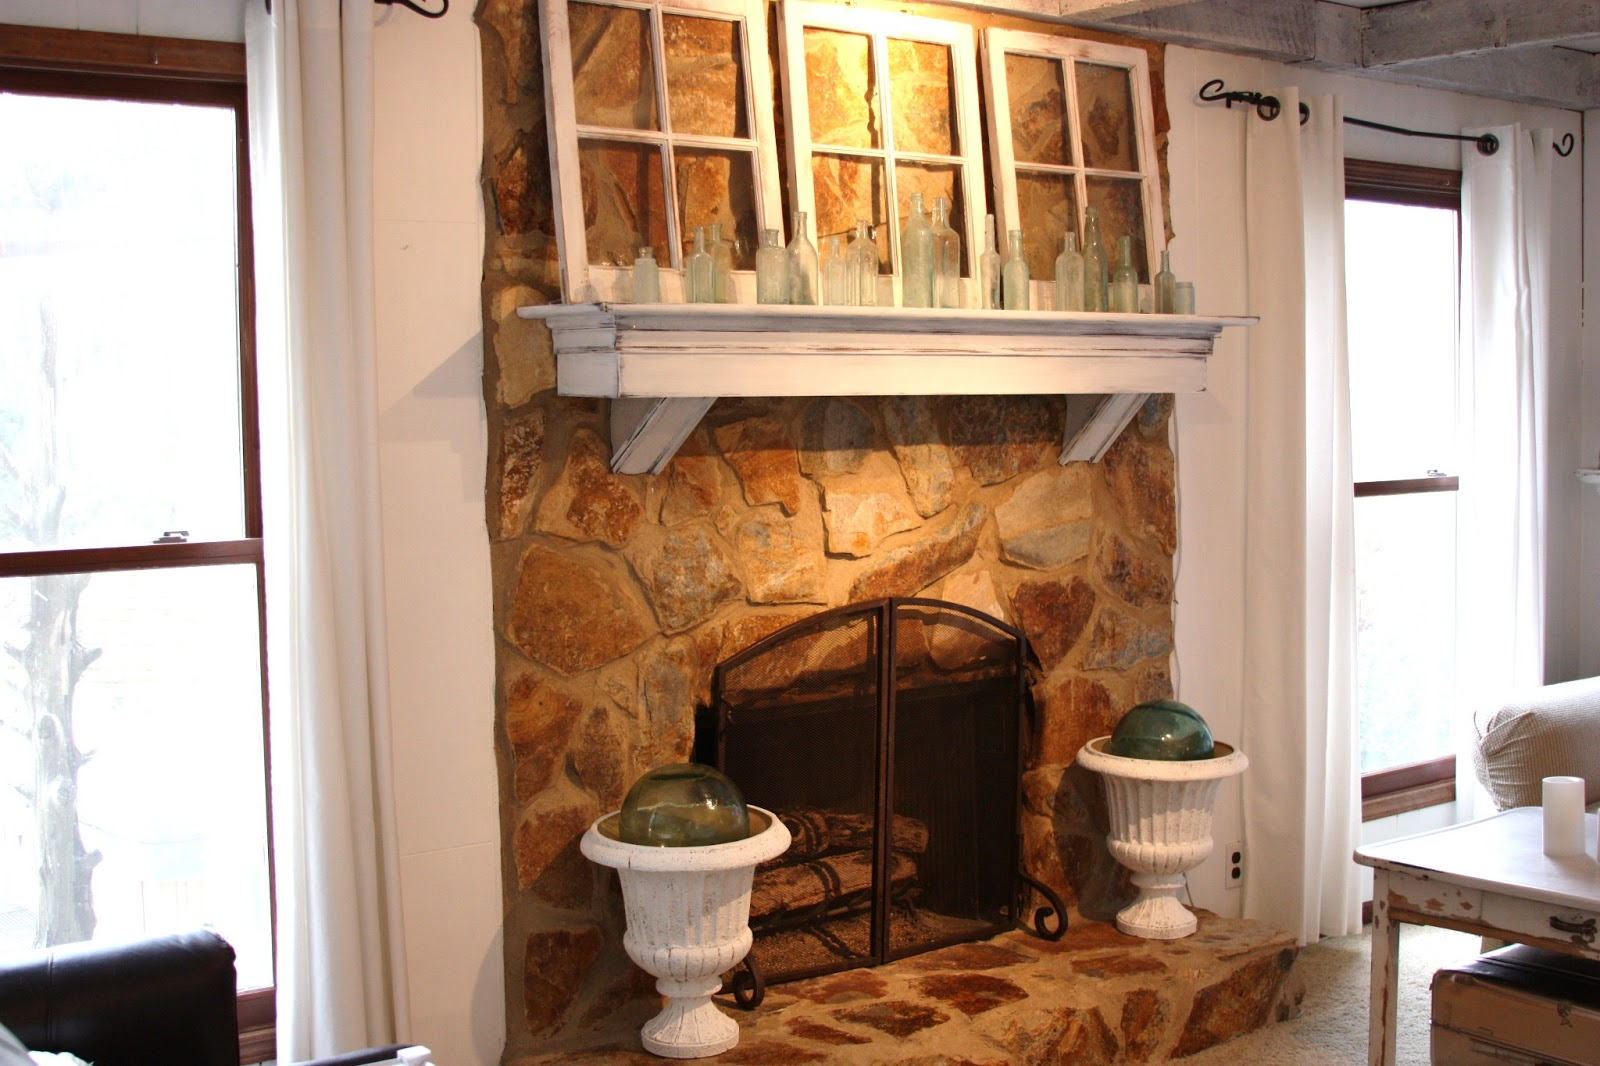 Erin's Art And Gardens: Painted Stone Fireplace Before And